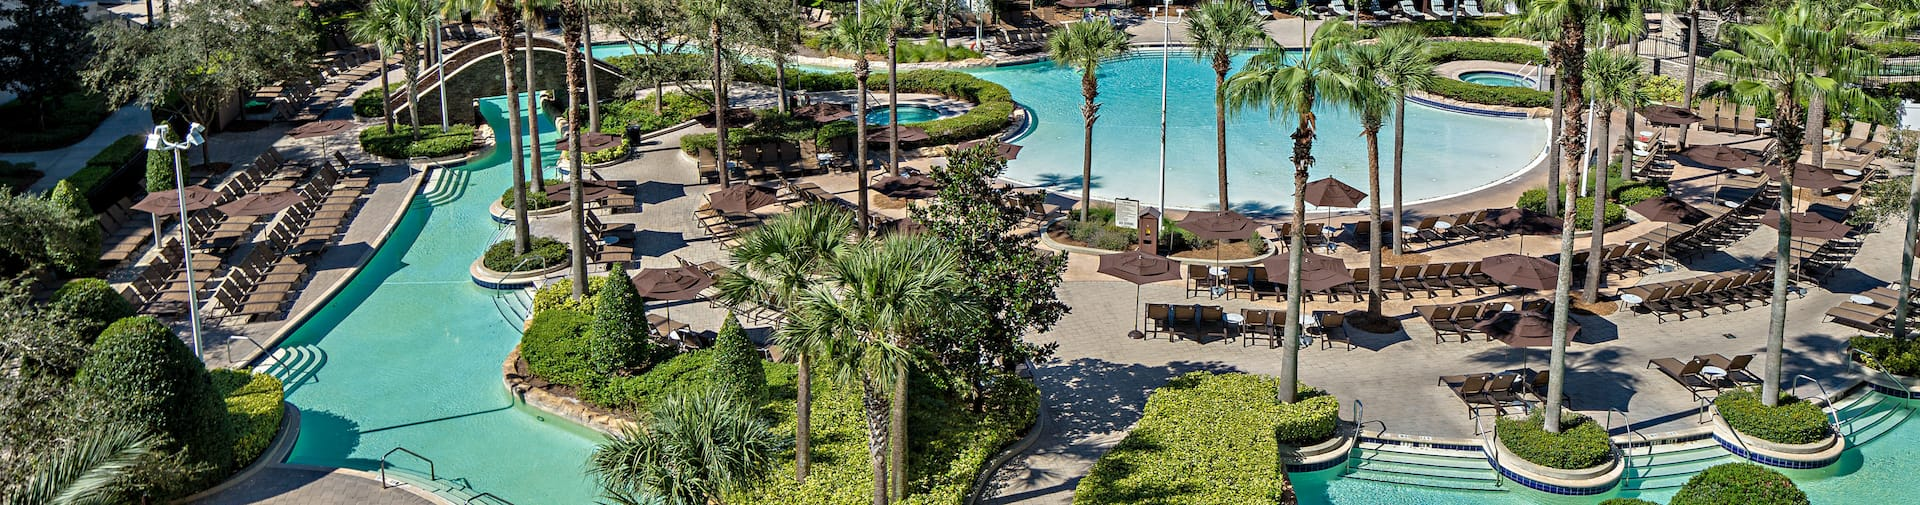 Aerial View of Large Outdoor Pool Area with Palm Trees